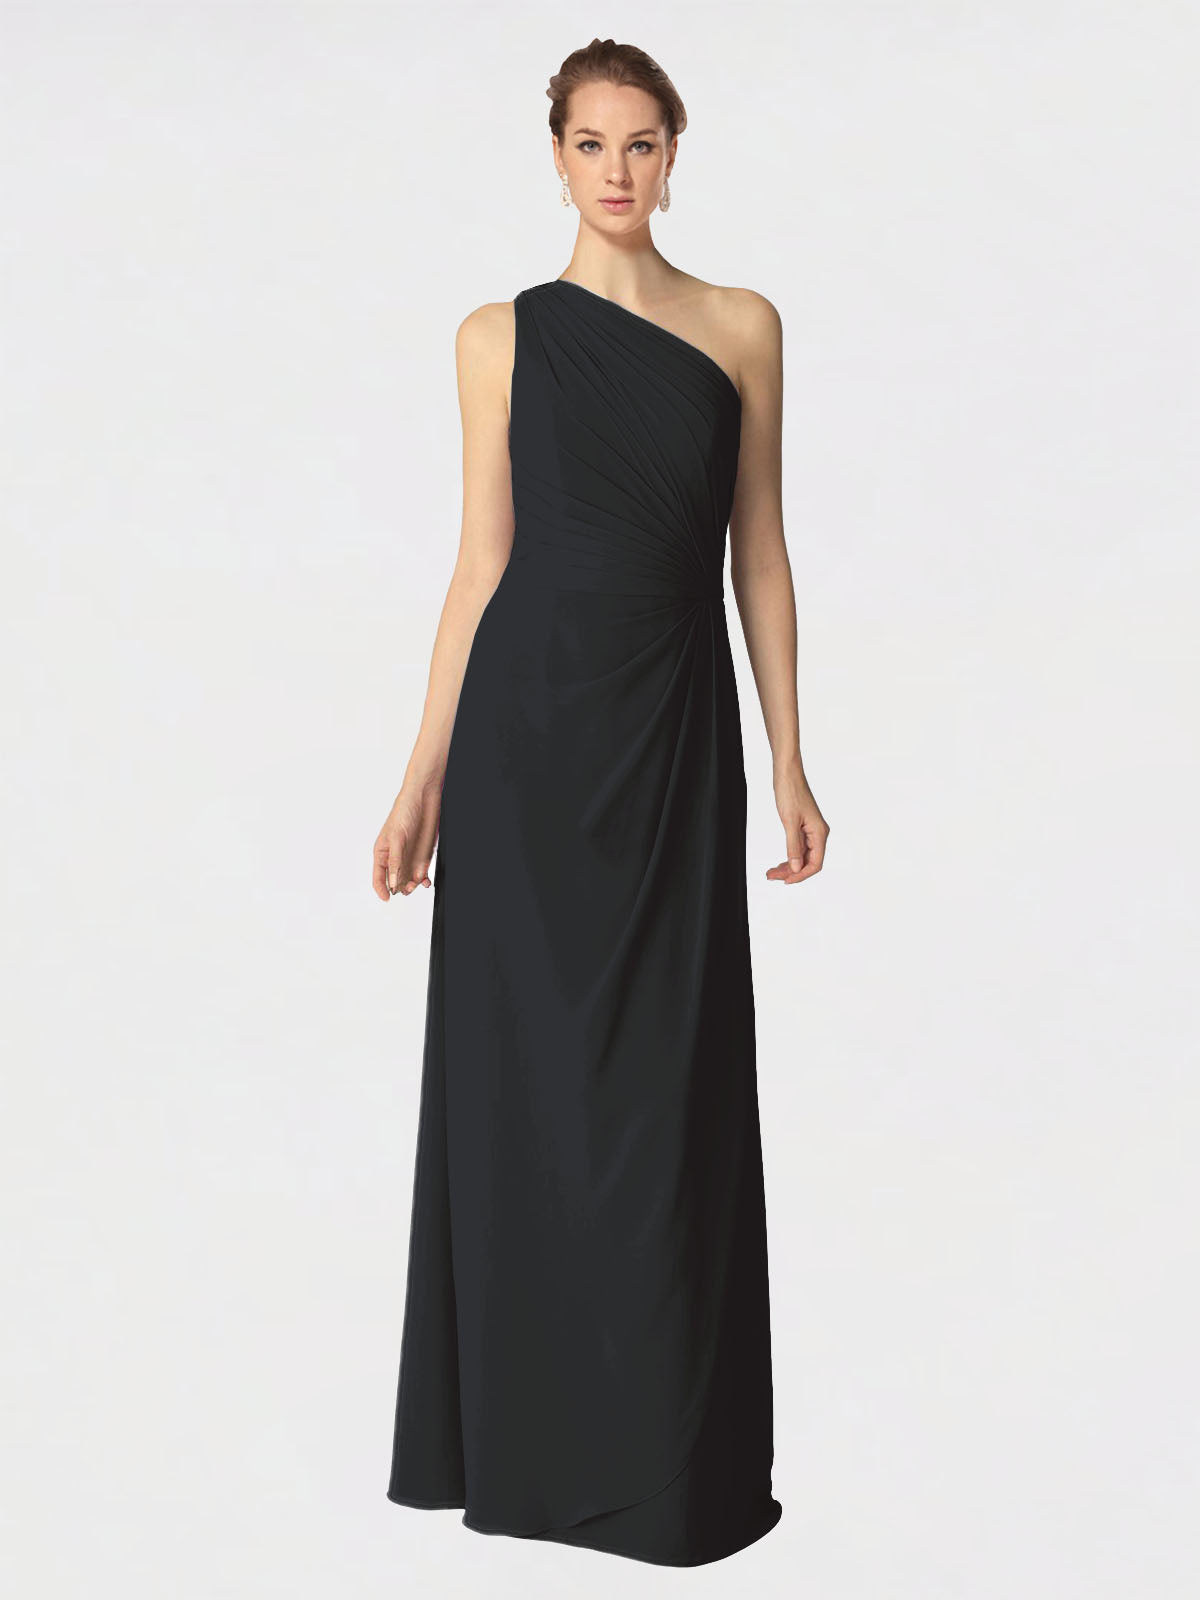 Long A-Line One Shoulder Sleeveless Black Chiffon Bridesmaid Dress Aurora